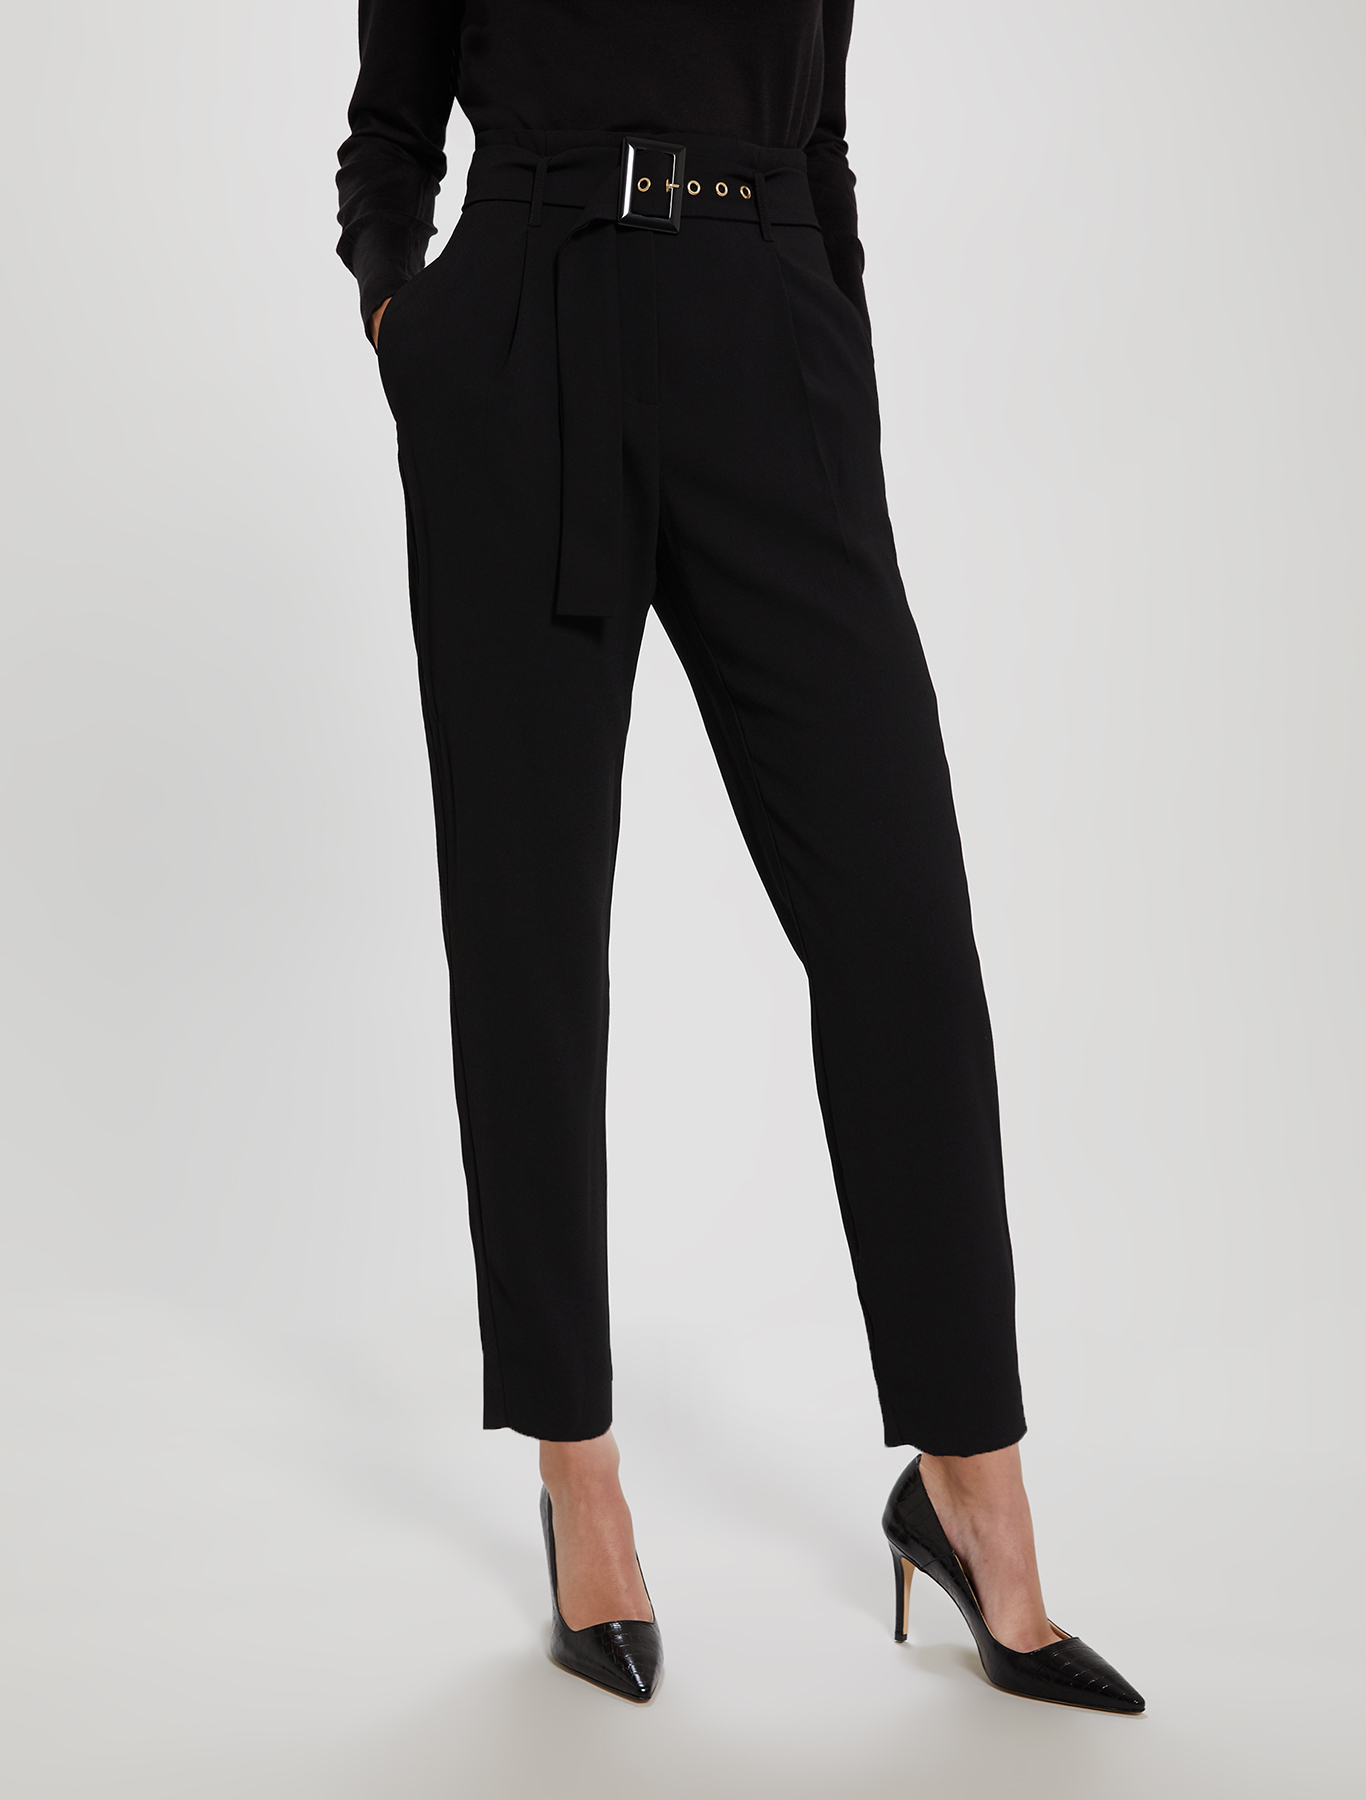 Envers satin trousers - black - pennyblack